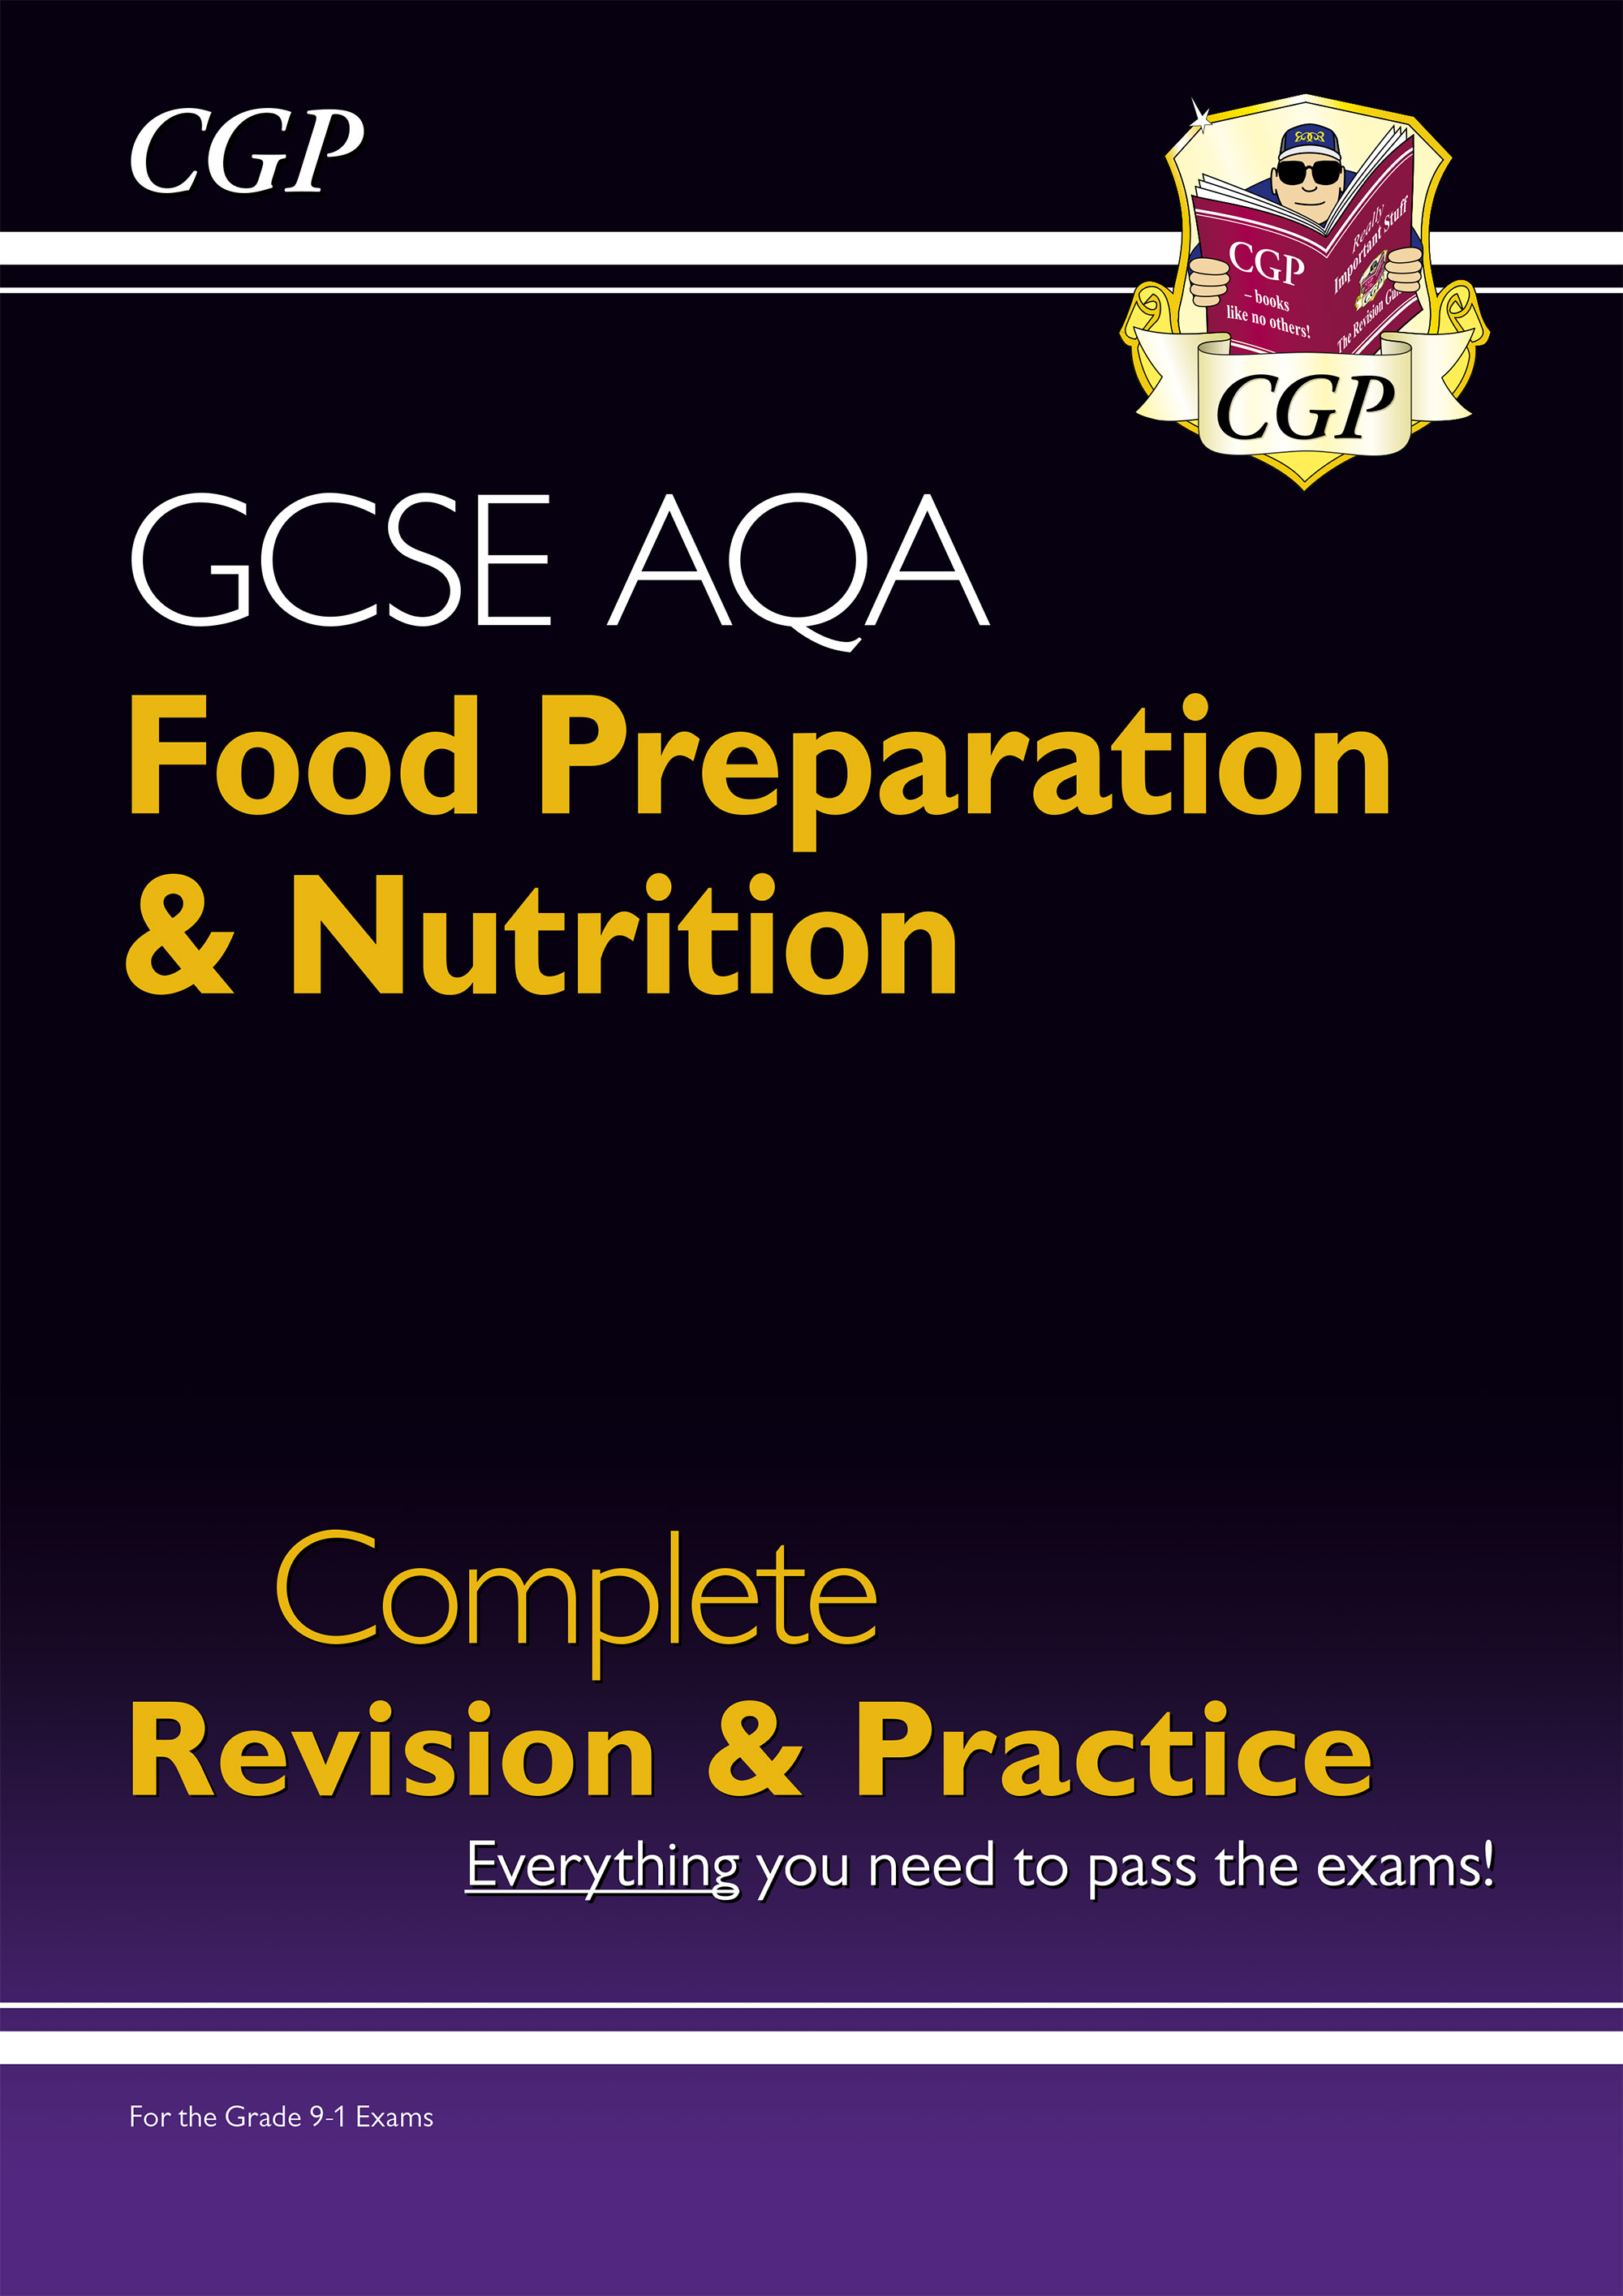 FNAS41DK - New 9-1 GCSE Food Preparation & Nutrition AQA Complete Revision & Practice